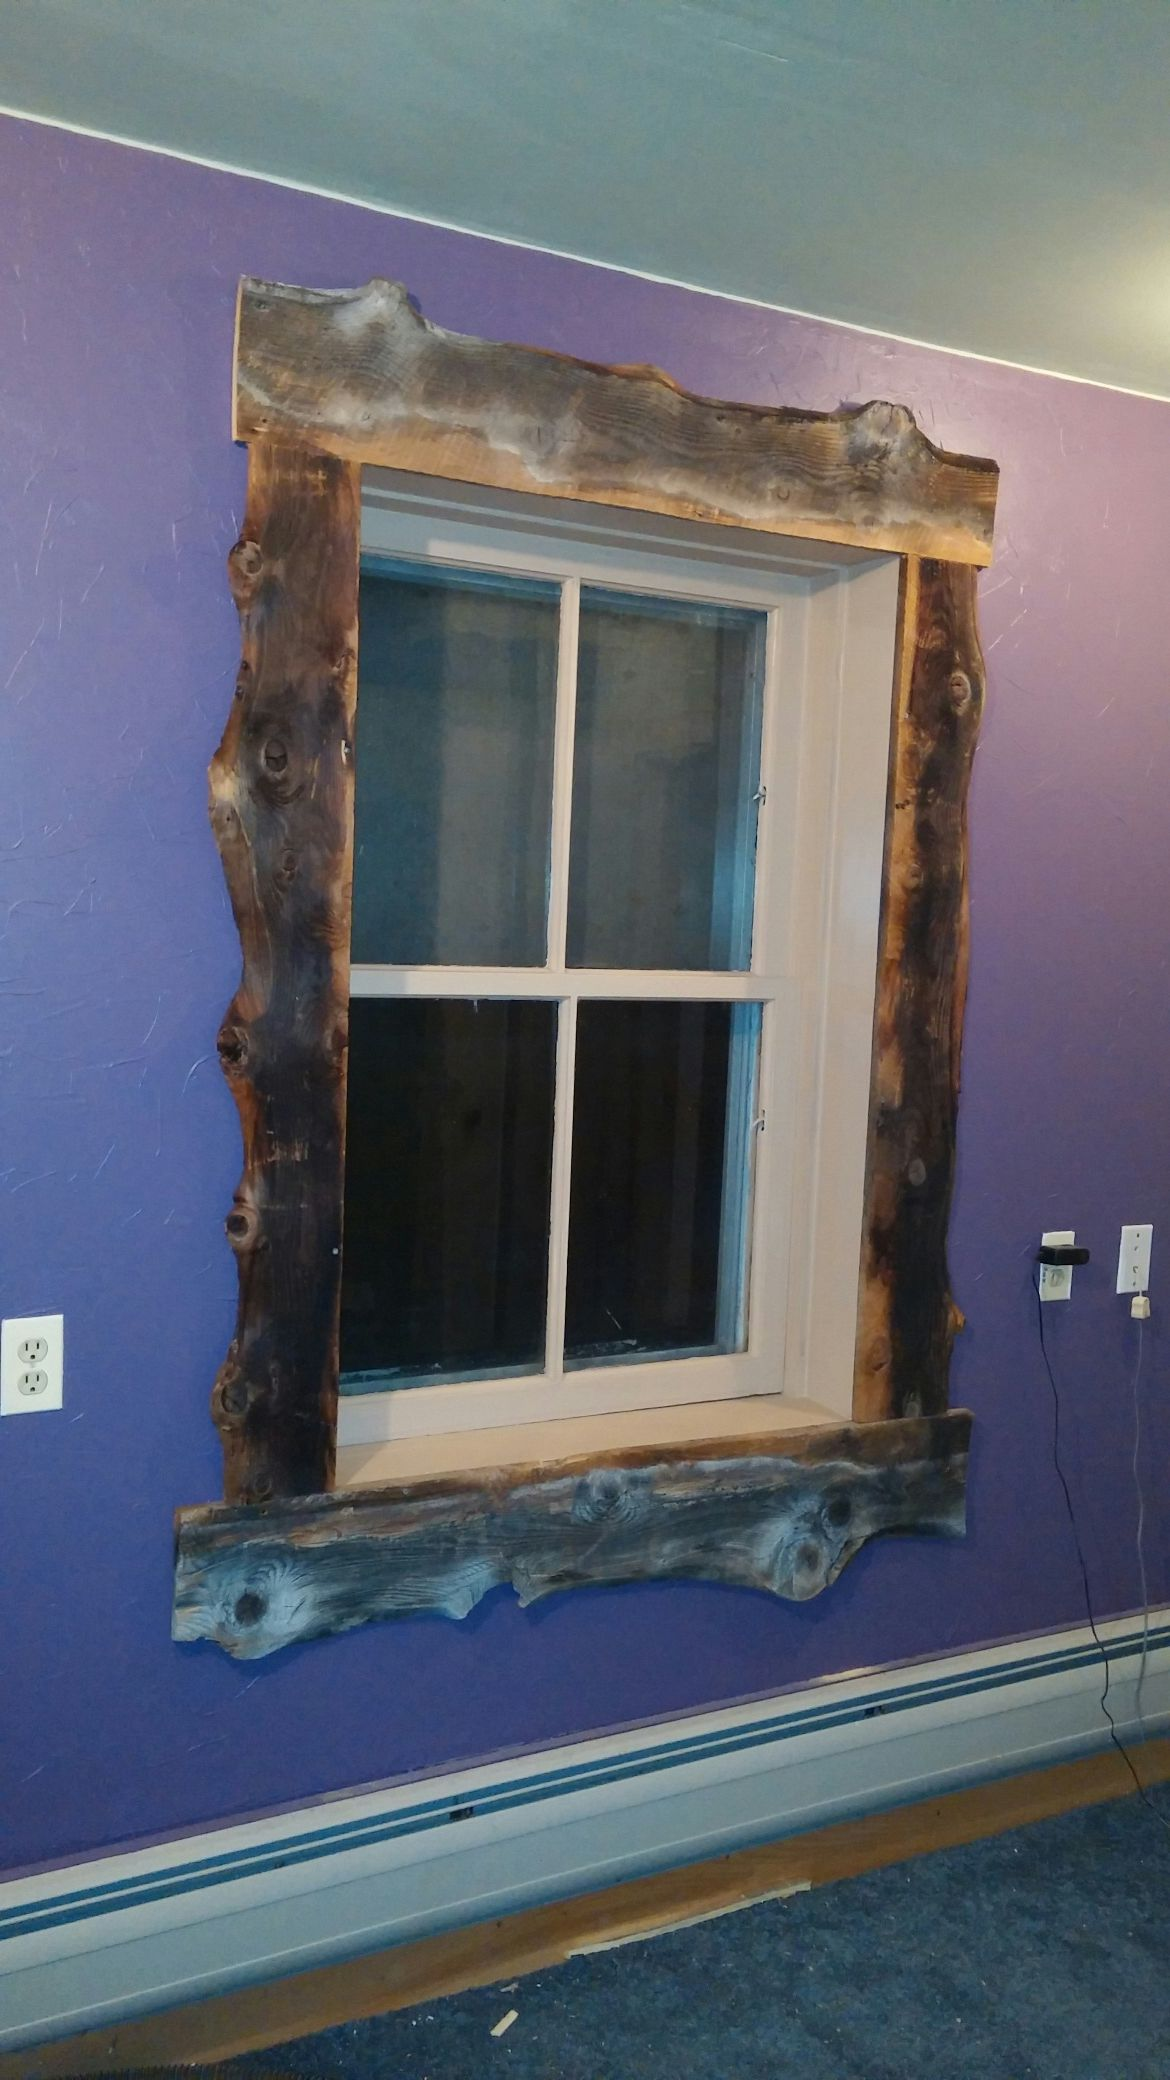 Molduras Para Ventanas Exteriores Trimmed Out The Window With Old Slab Barnwood Lookin Pretty